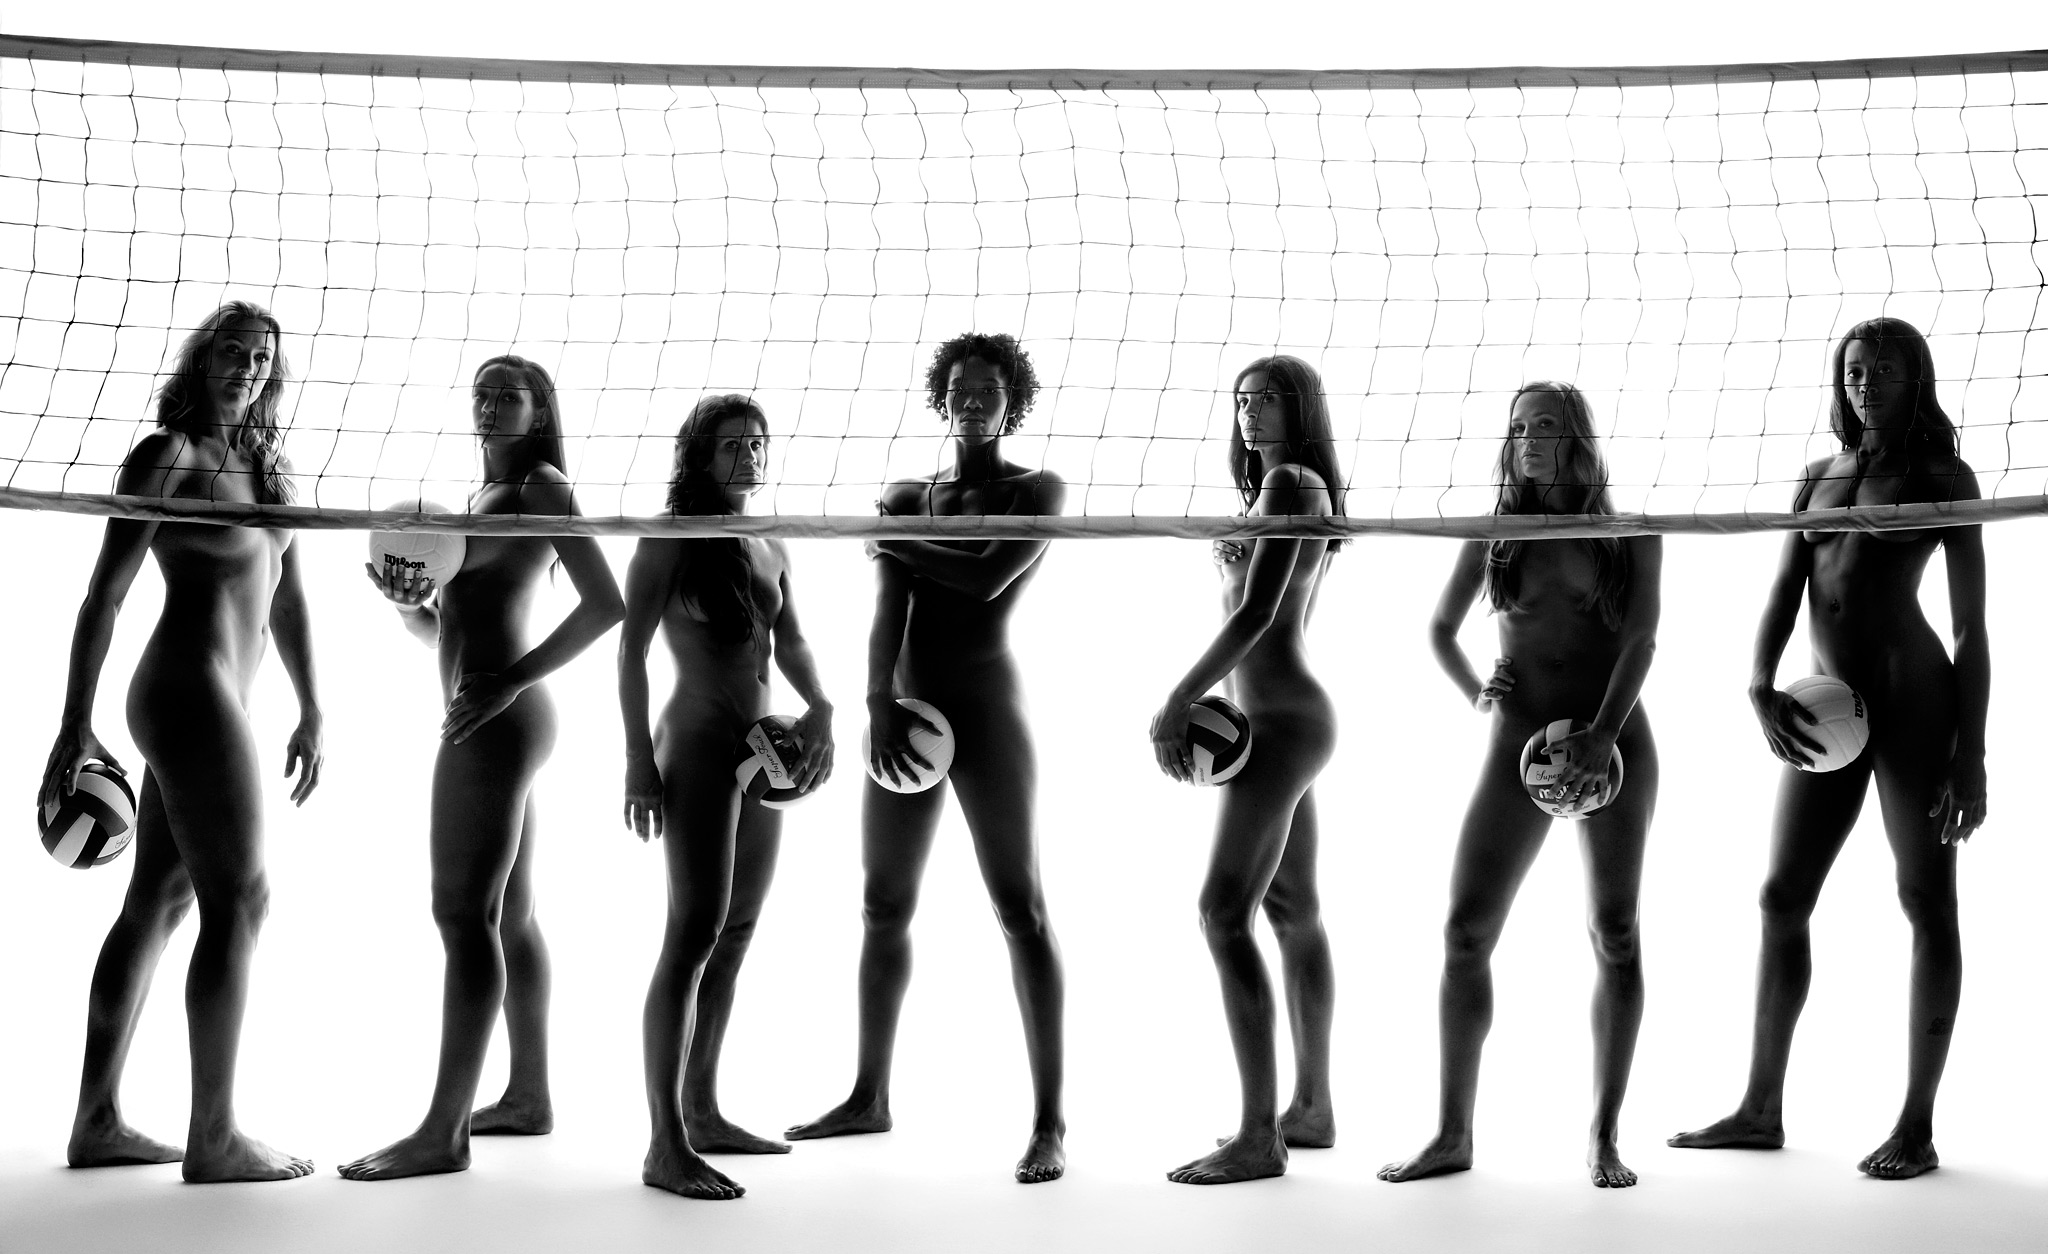 Women s national volleyball team